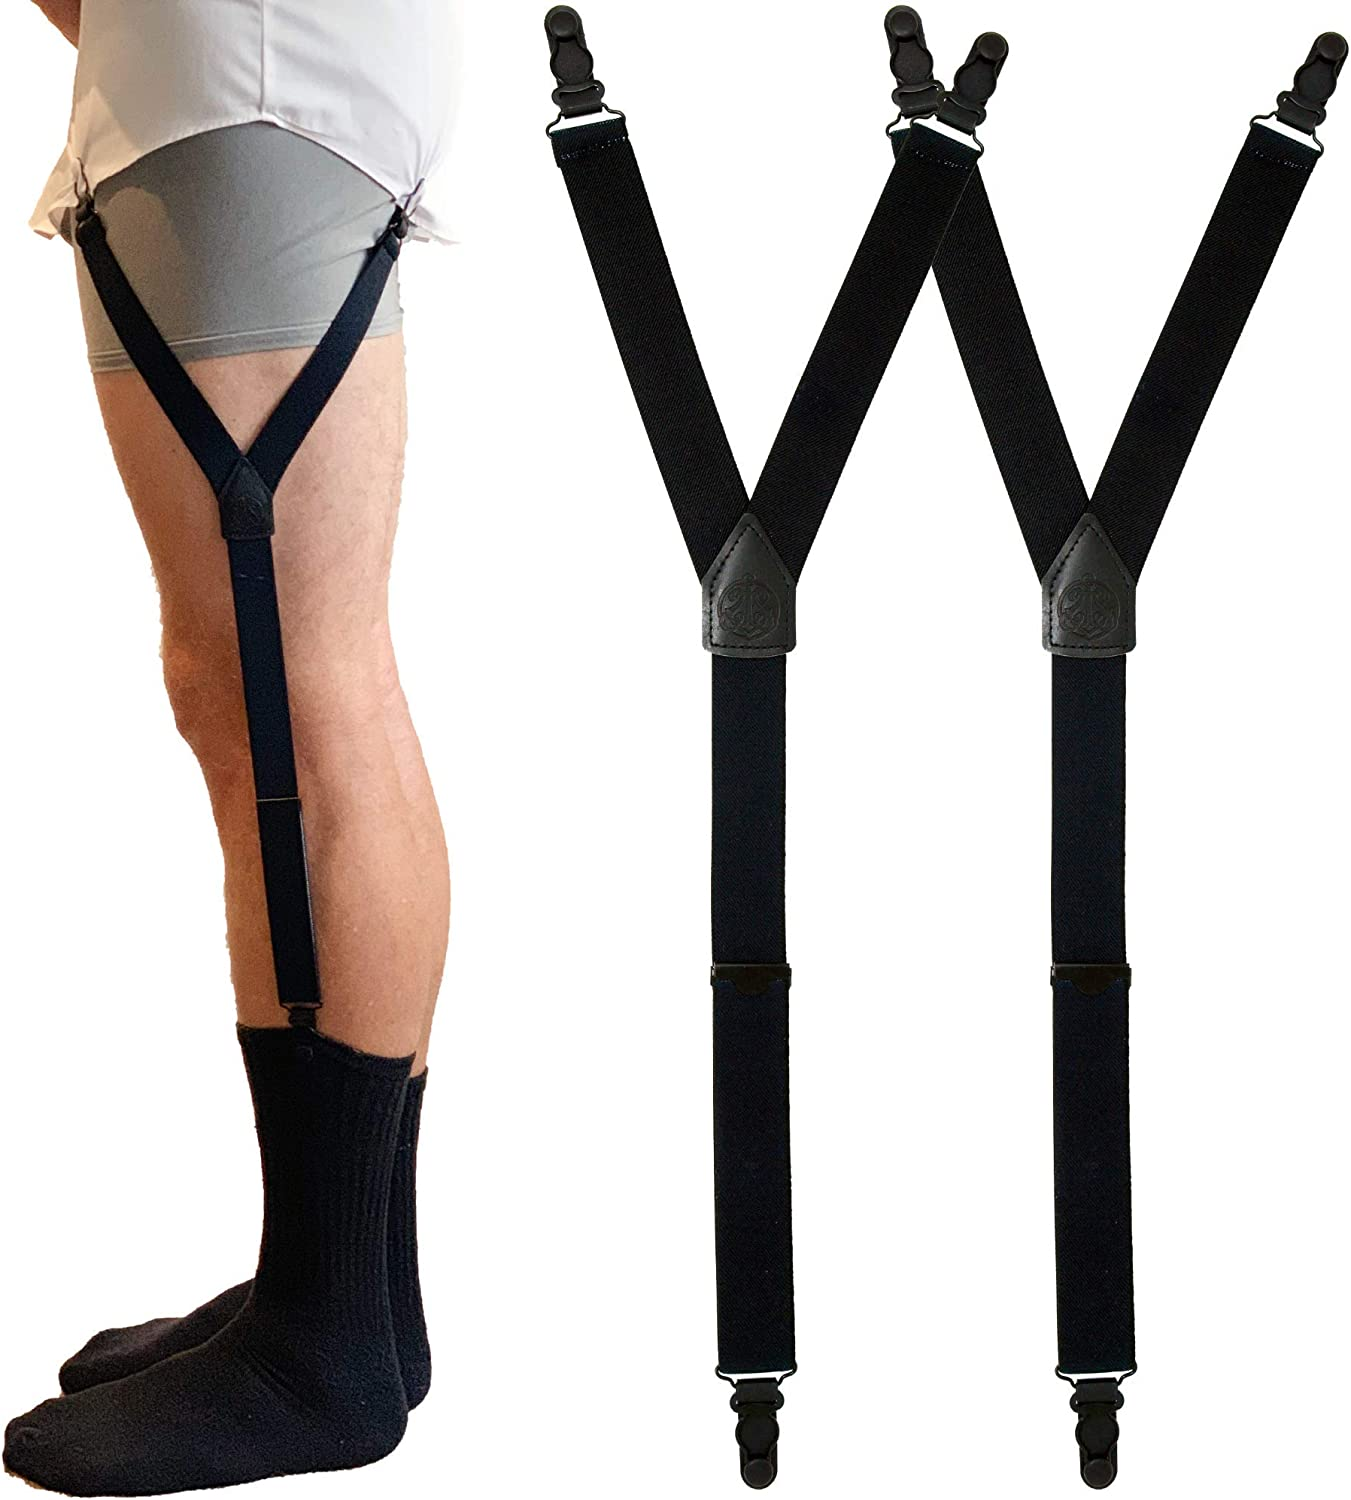 SIVEL + SHARP Shirt Stays   Fancy Leather Patches, Adjustable & Elastic Shirttail Suspenders With Strong Metal Clips